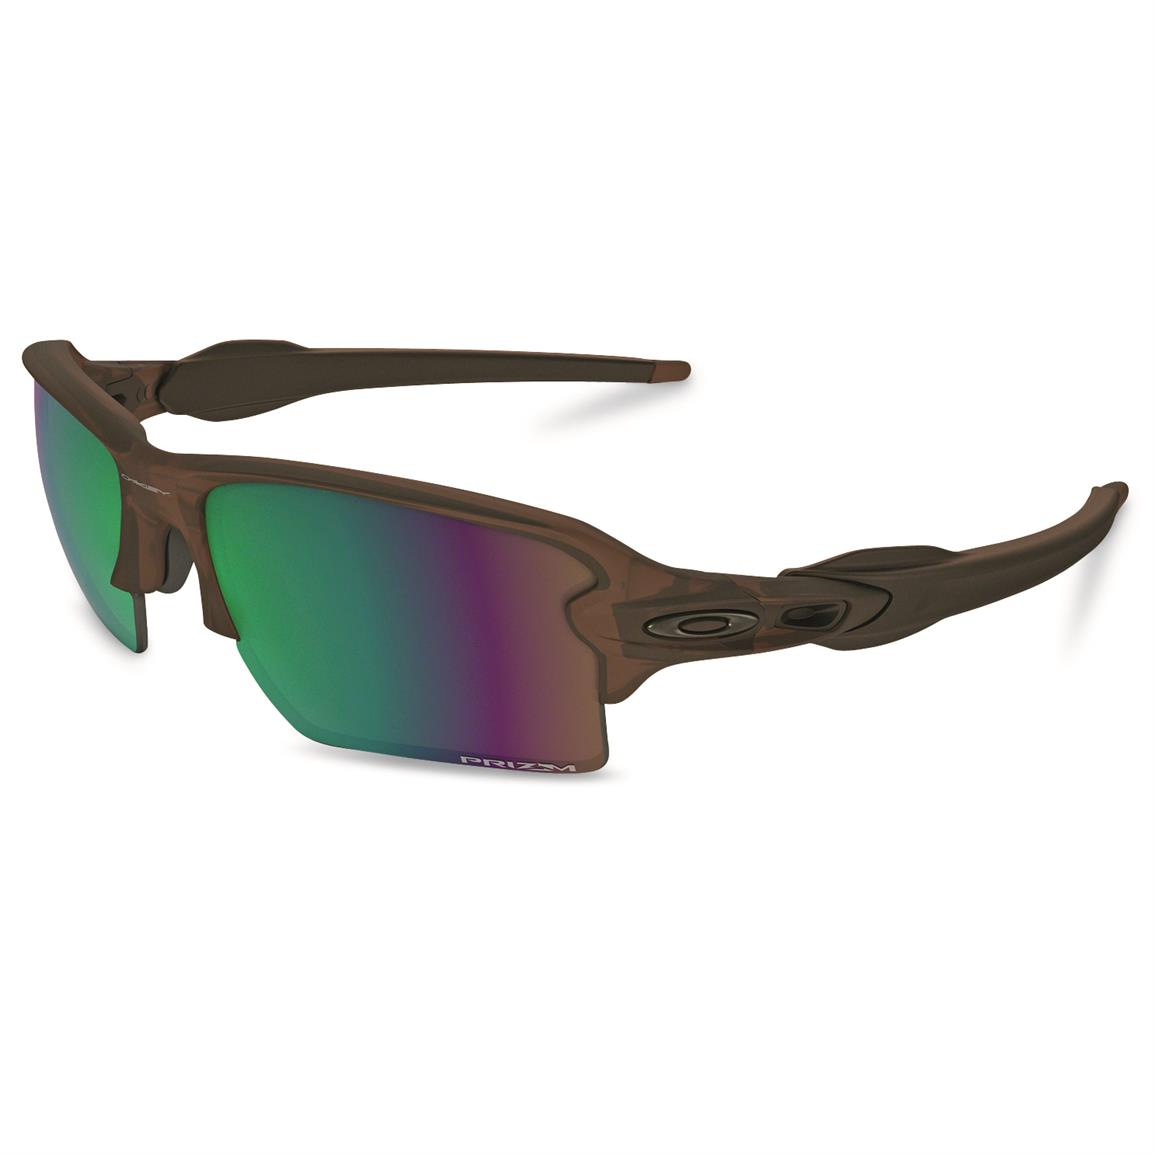 Oakley Flak 2.0 XL PRIZM Shallow Water Polarized Sunglasses